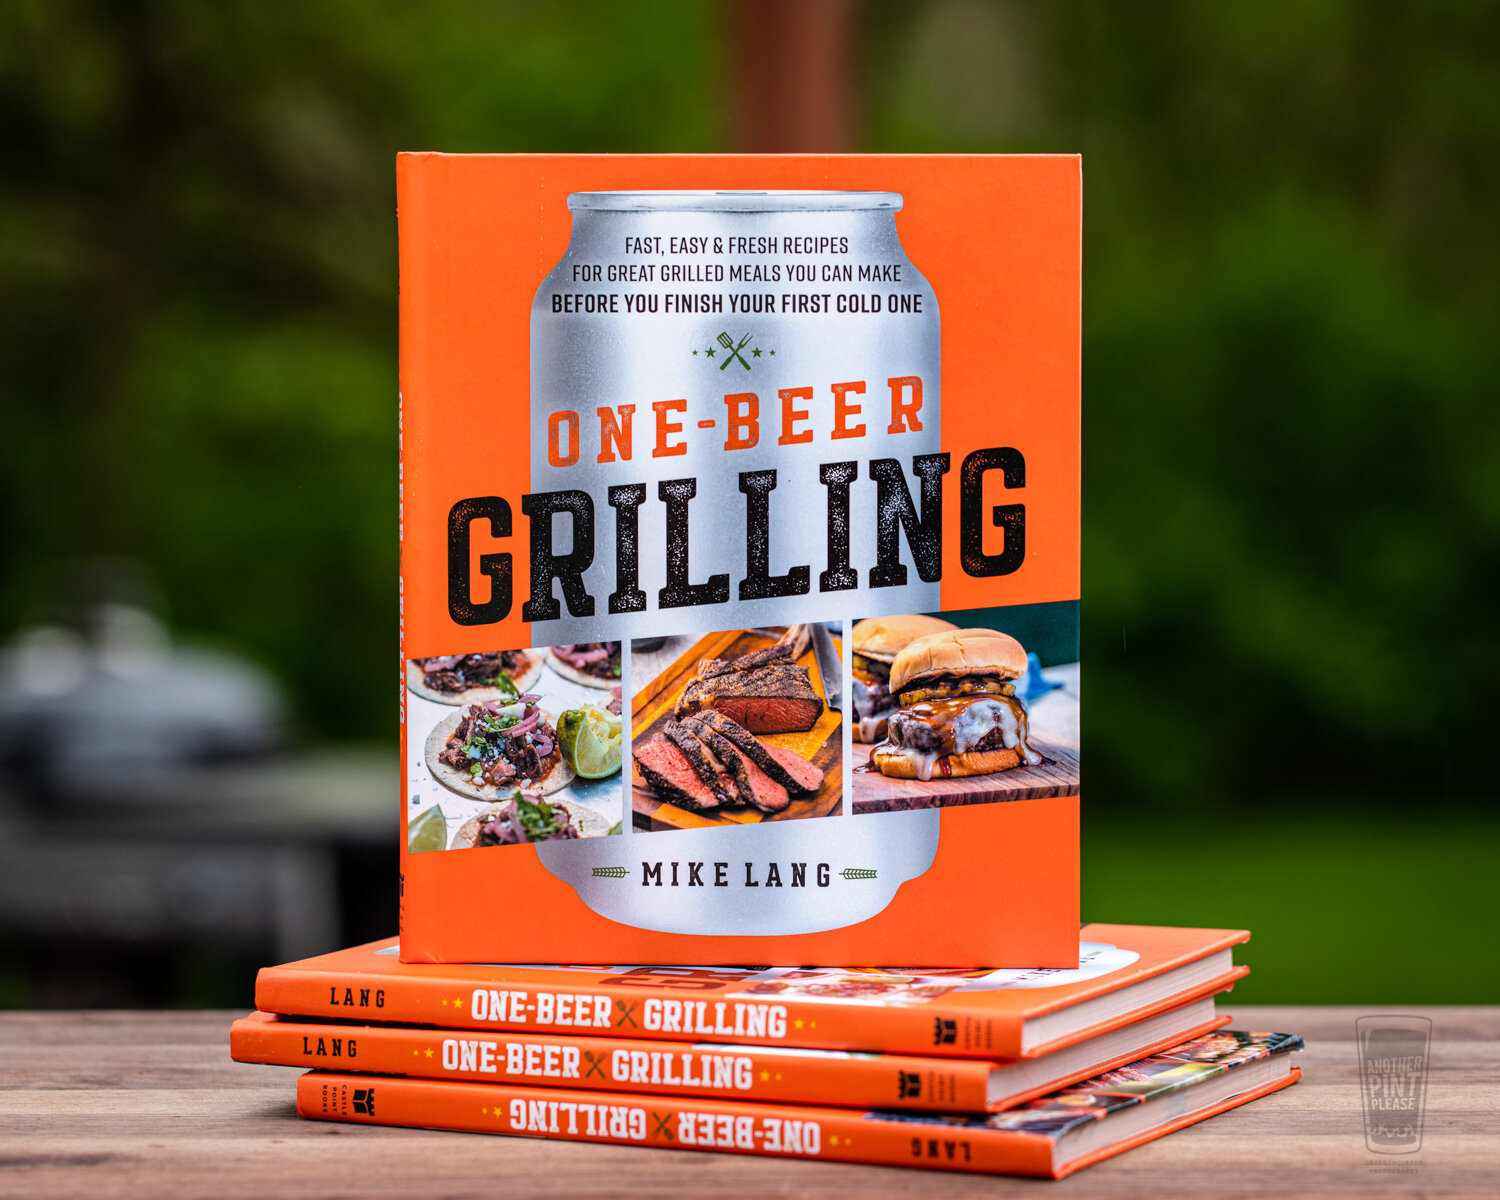 One-Beer Grilling by Mike Lang